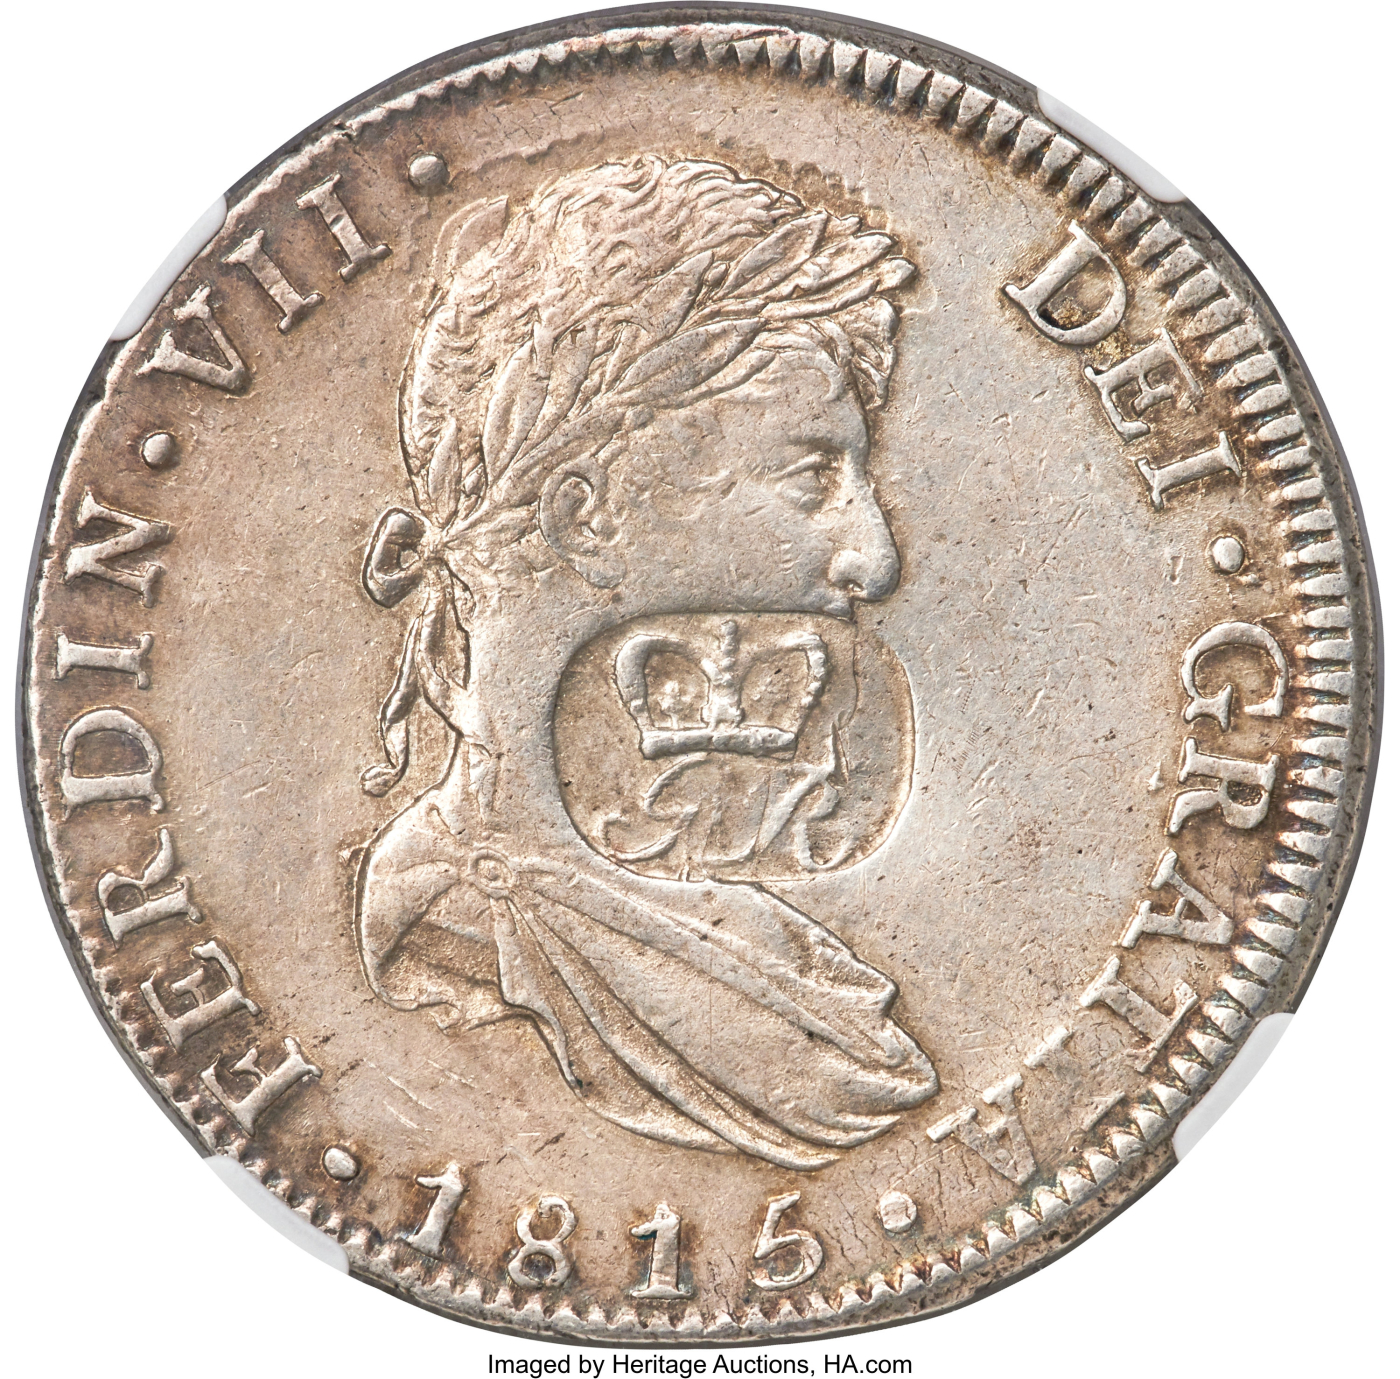 Countermarked coinage (1810-1818)